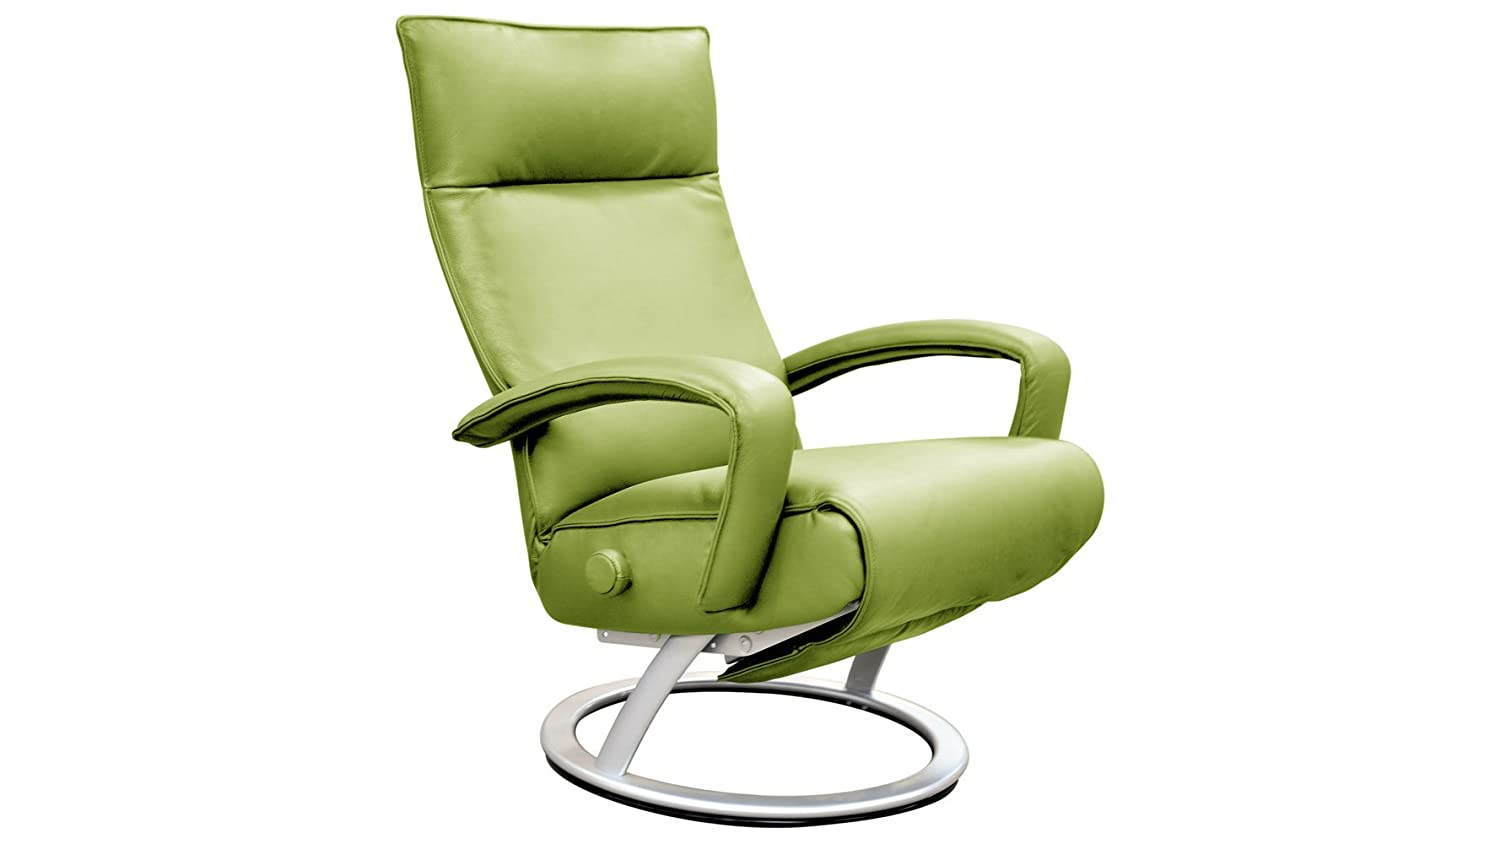 Amazon.com: Gaga Recliner Chair Mint Green Leather By Lafer Recliner Chairs:  Kitchen U0026 Dining